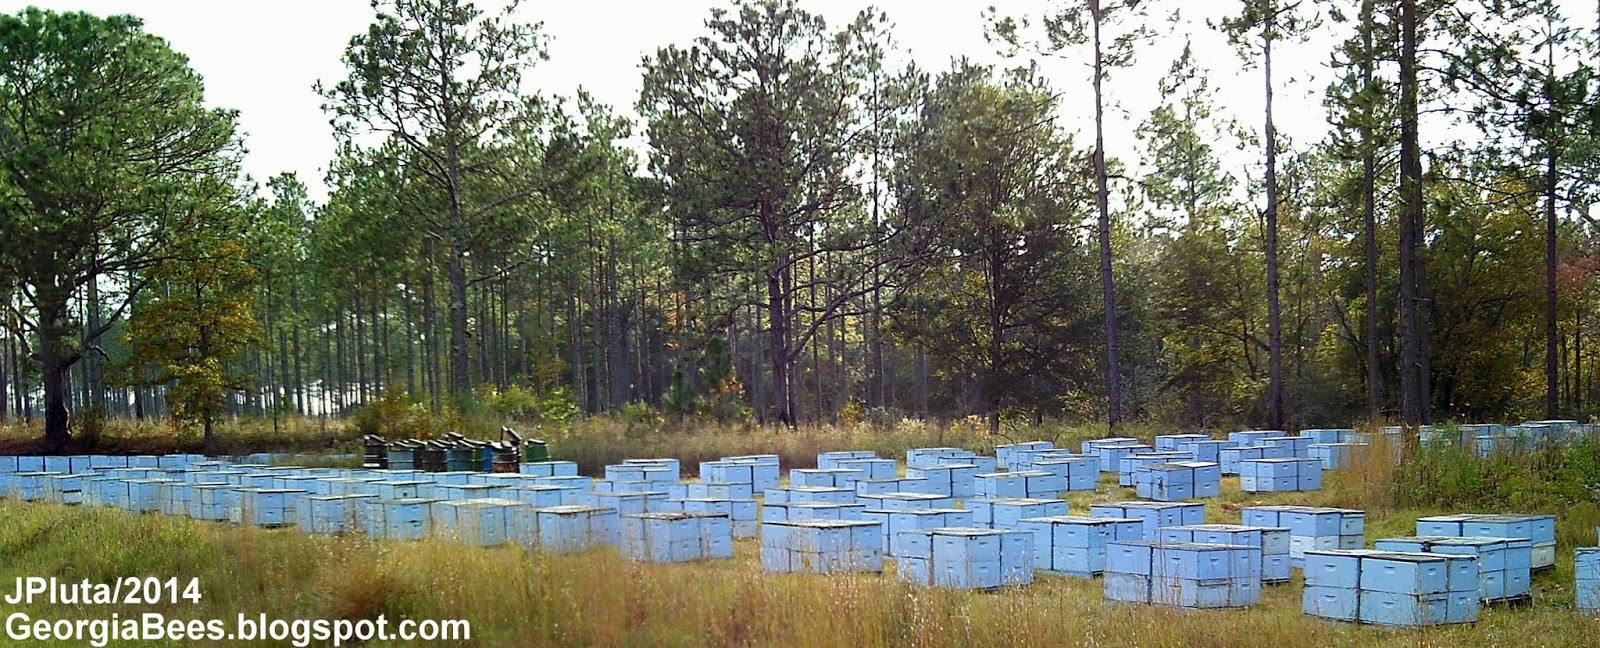 Outyard Commercial Beehive Pallets Holding Yard